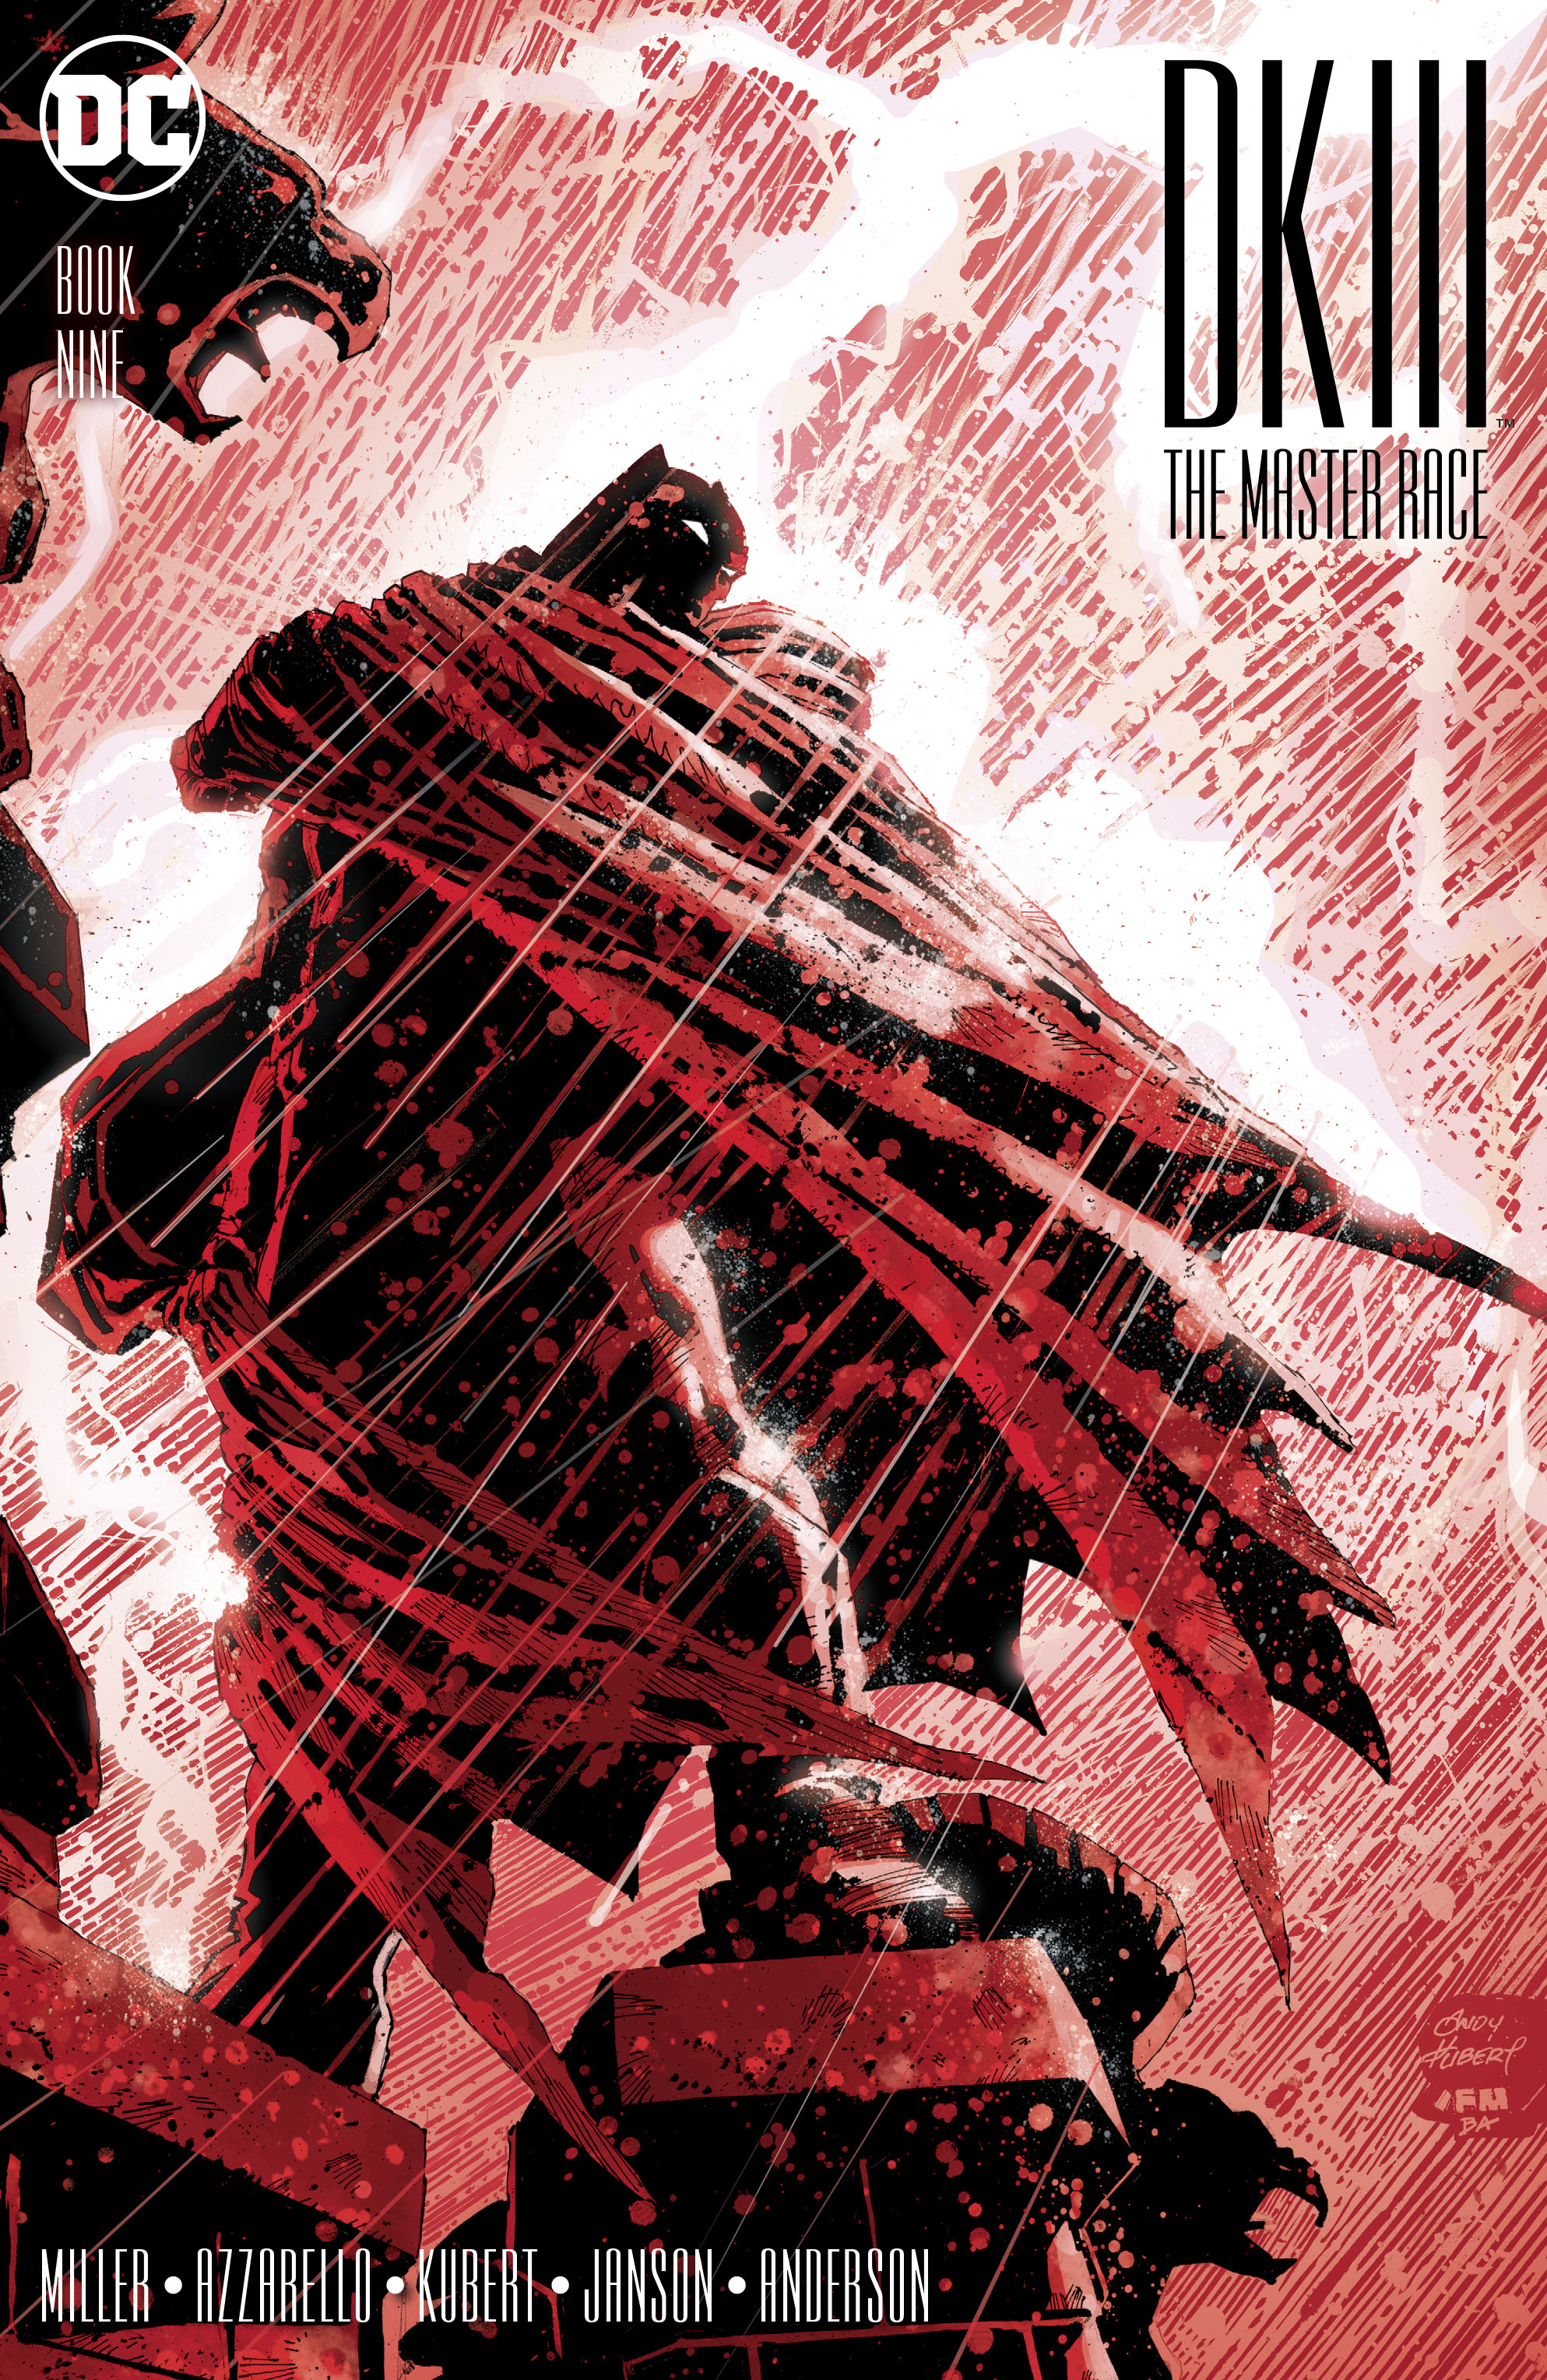 Read online Dark Knight III: The Master Race comic -  Issue #9 - 1